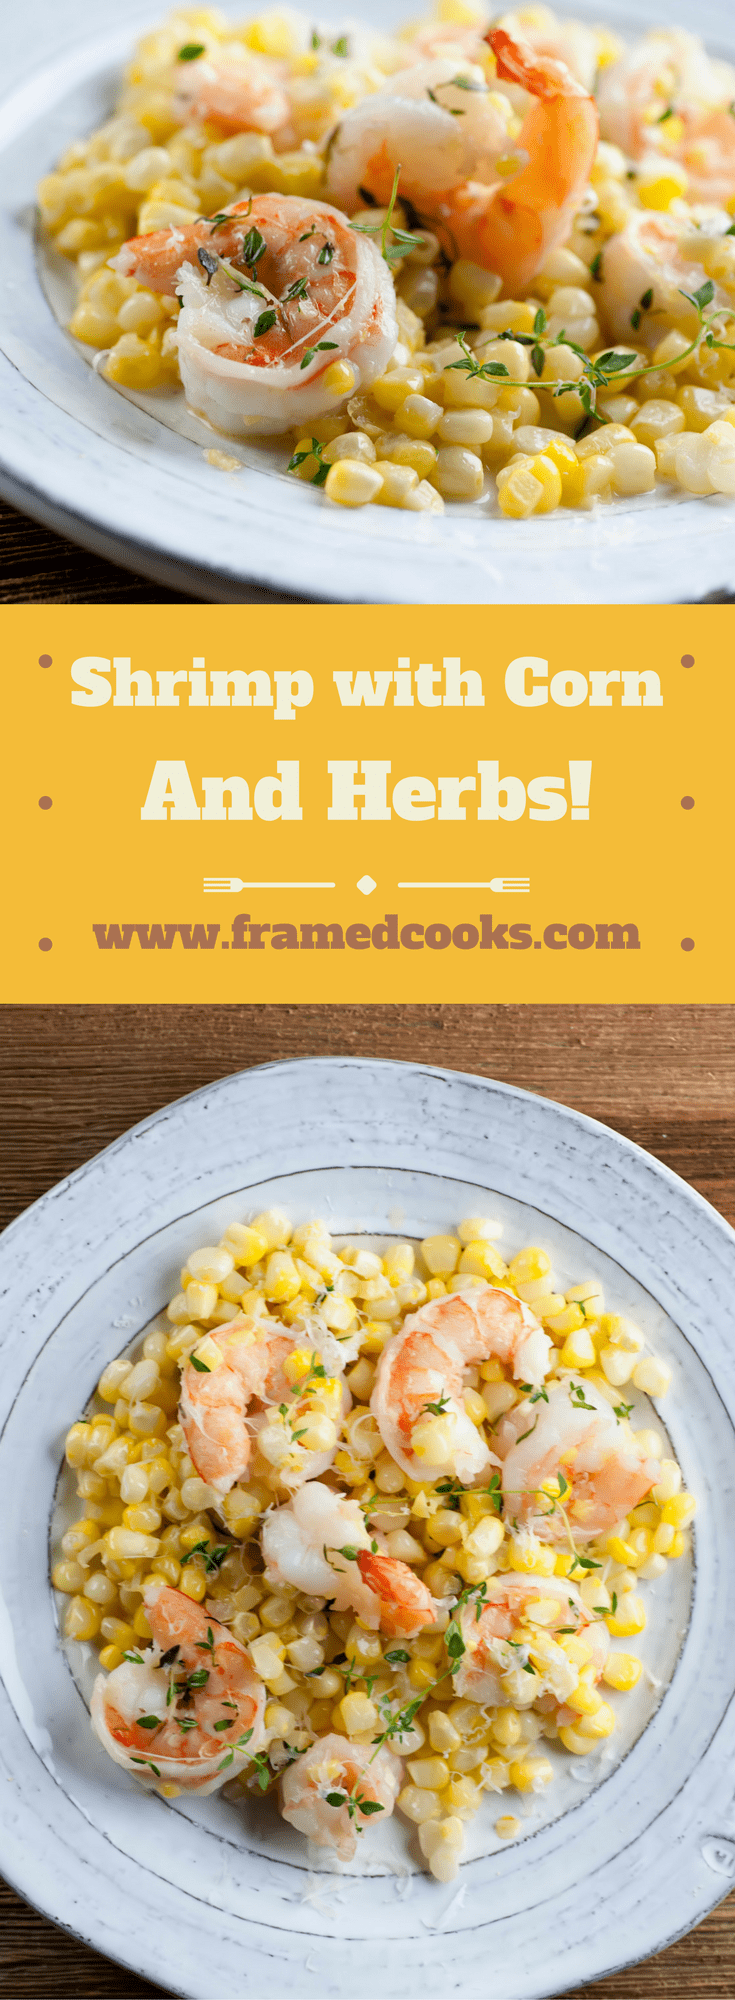 This easy recipe for shrimp with corn and herbs is the perfect end of summer supper!  And it's ready in 10 minutes - what could be better?